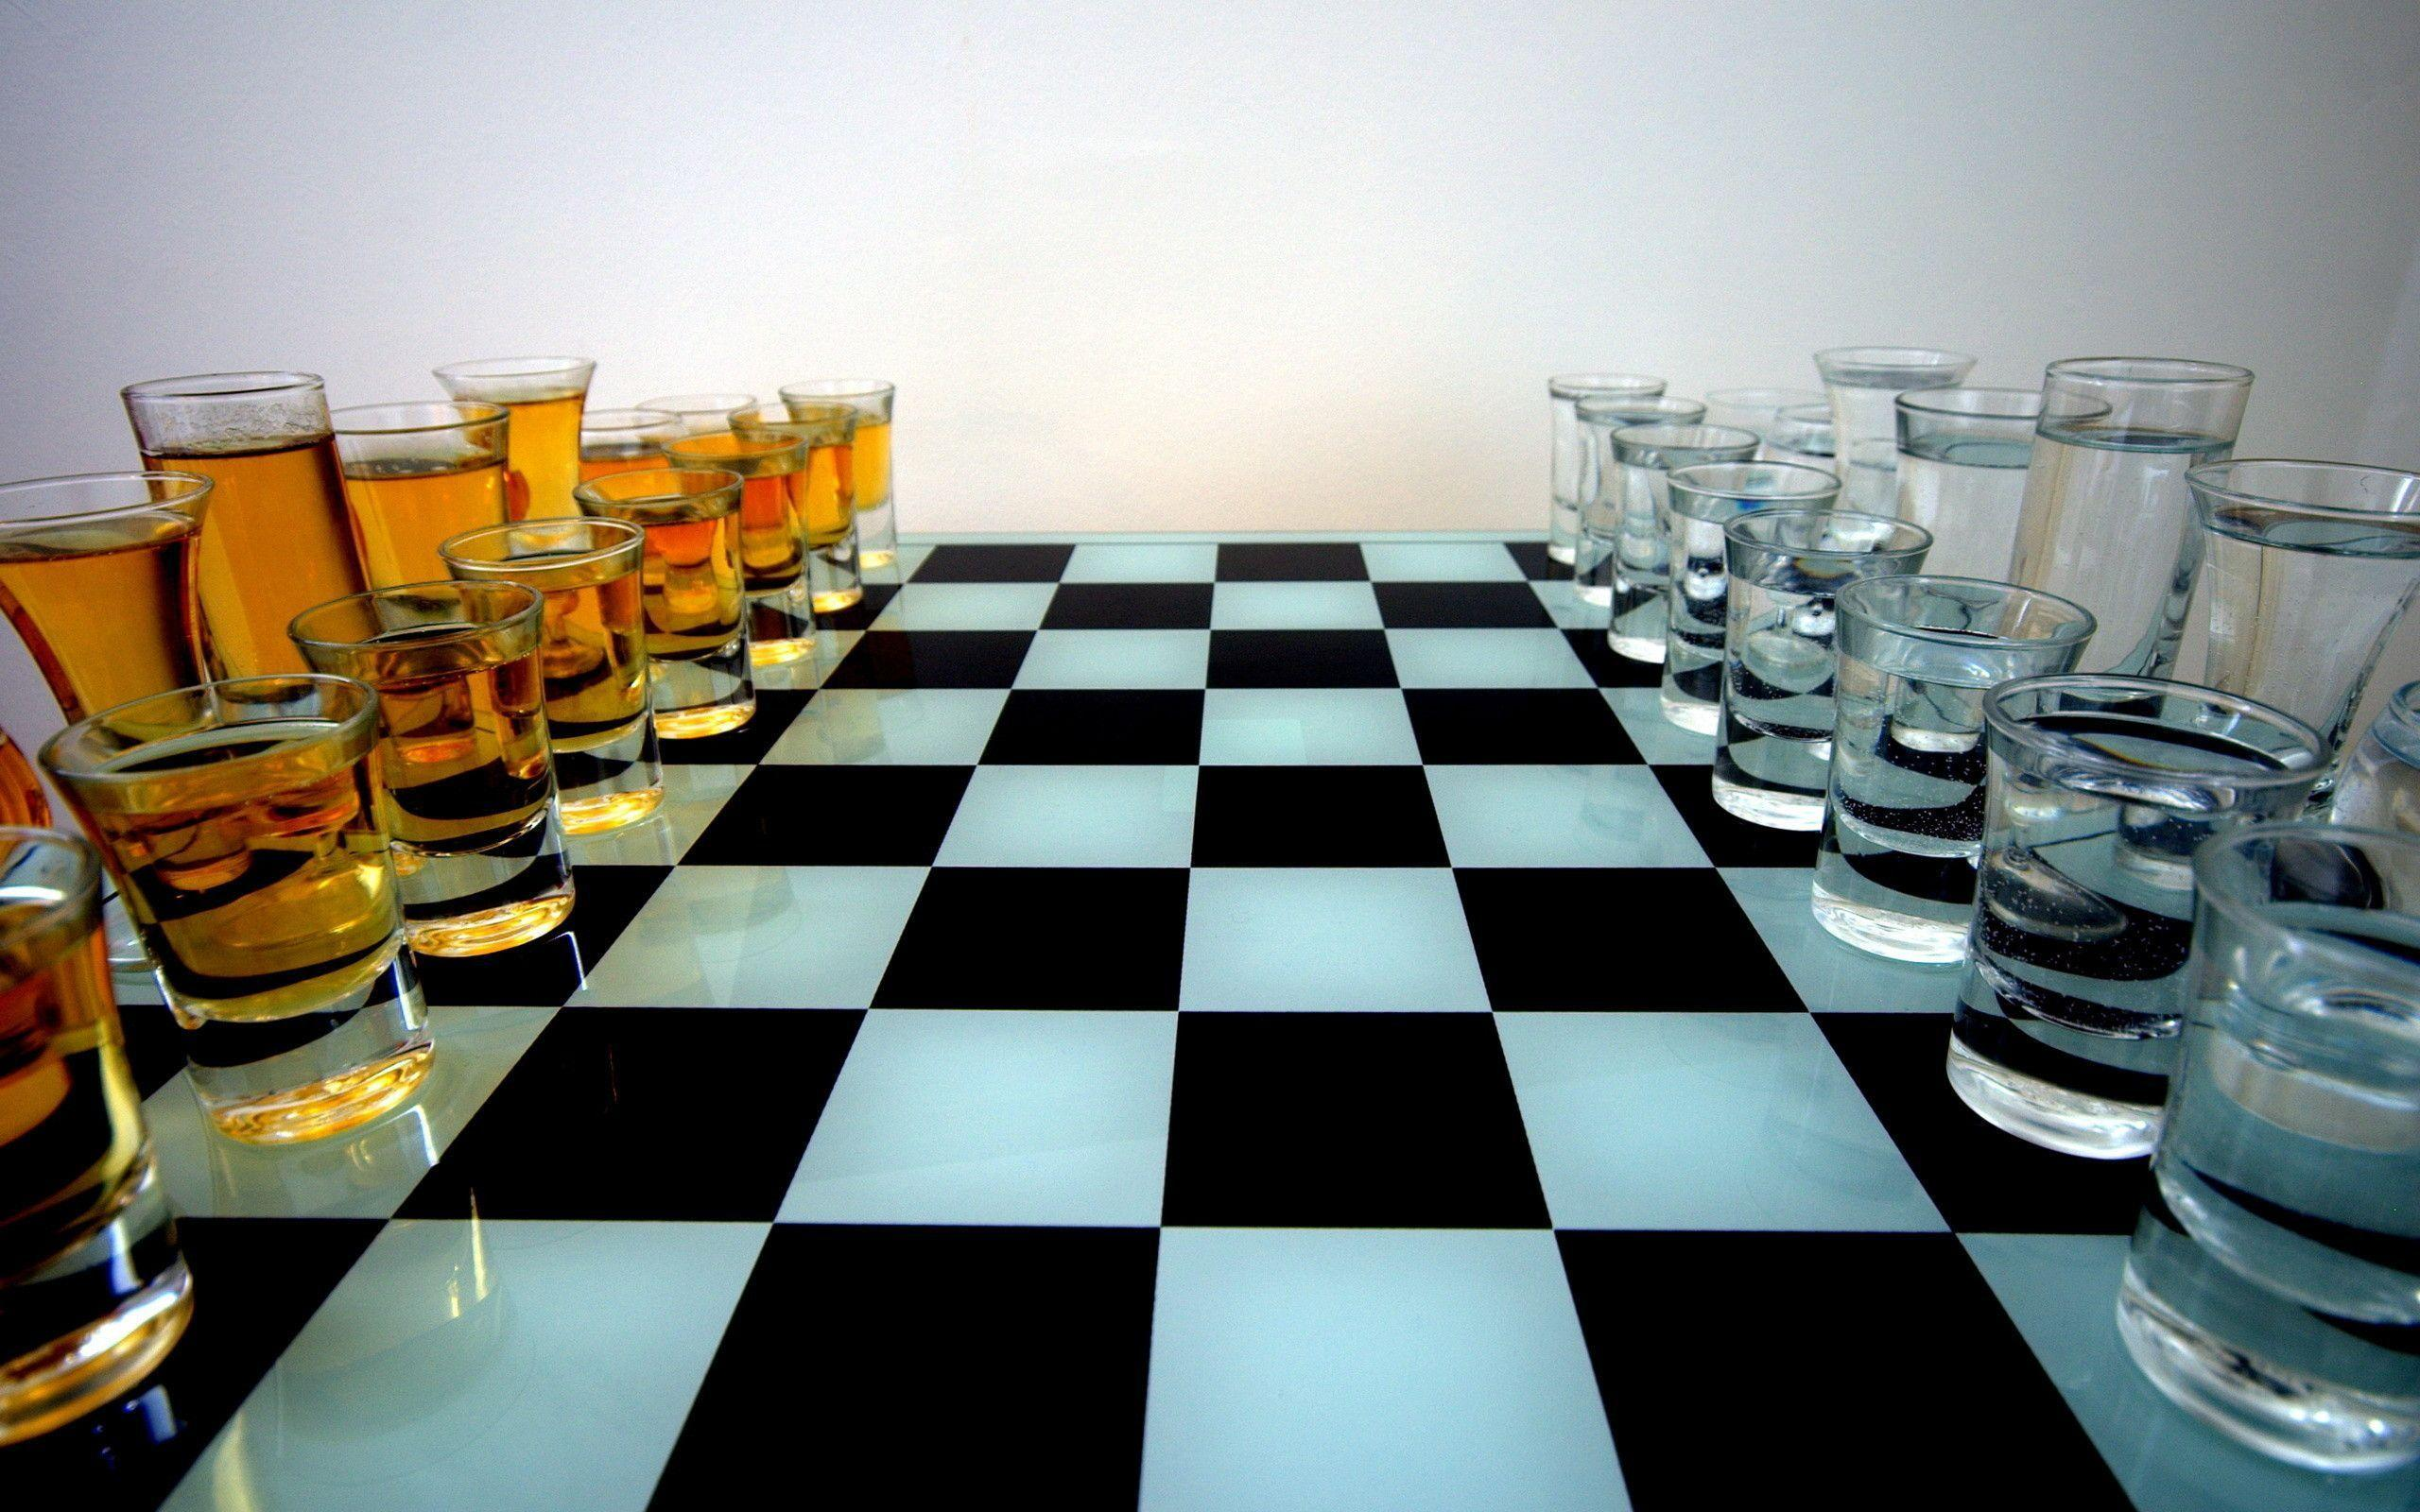 Chess Chessboard Stemware Black And White Wallpapers